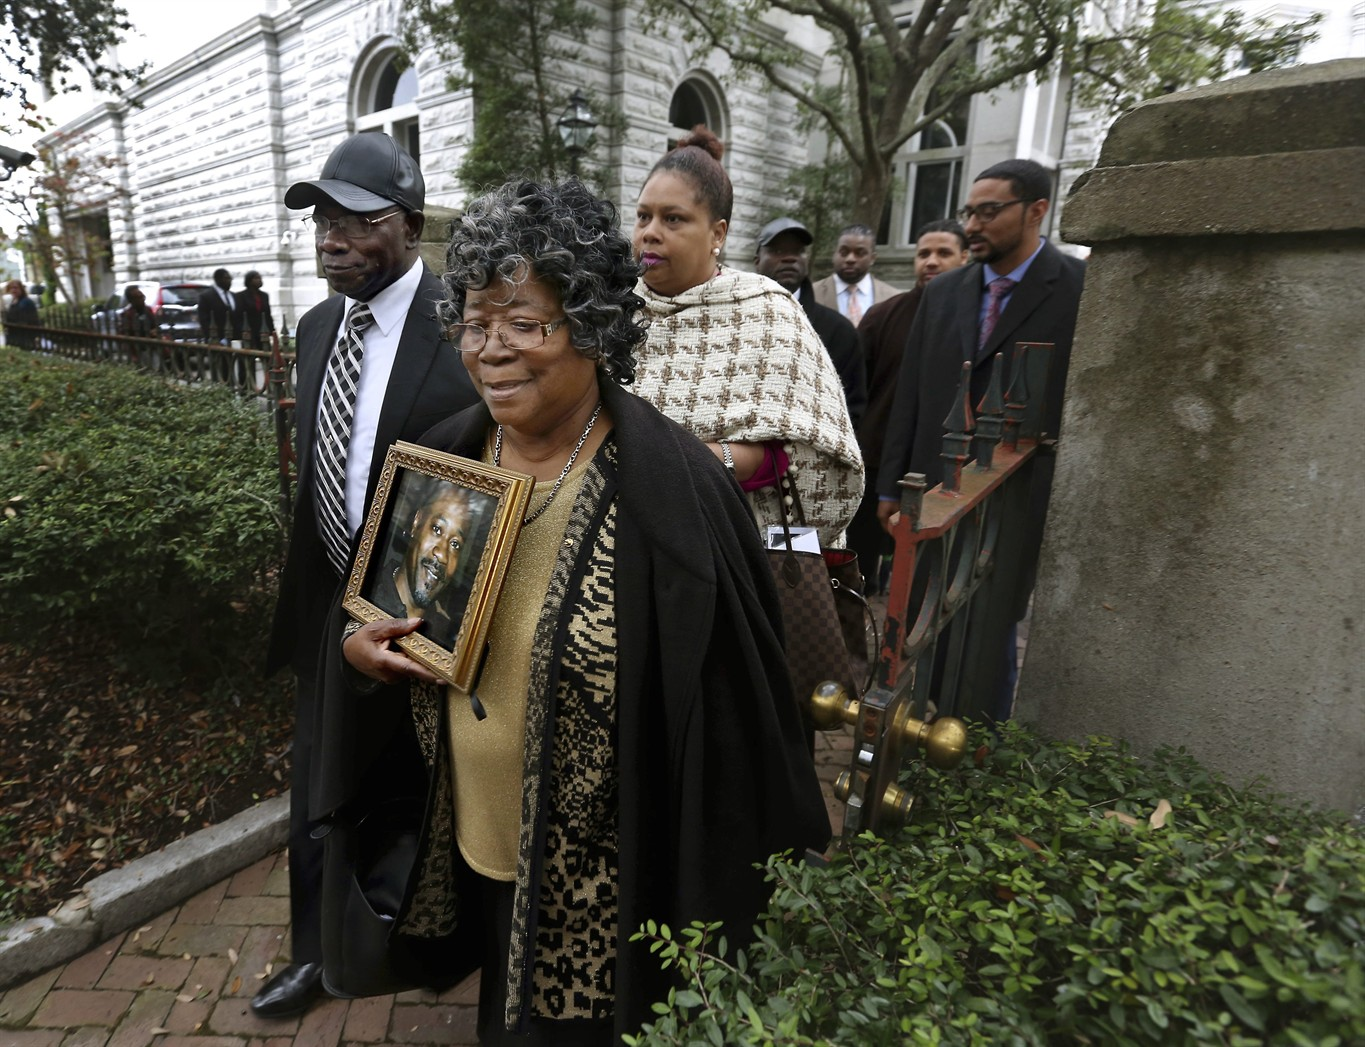 Walter Scott's Killer Sentenced to Prison in